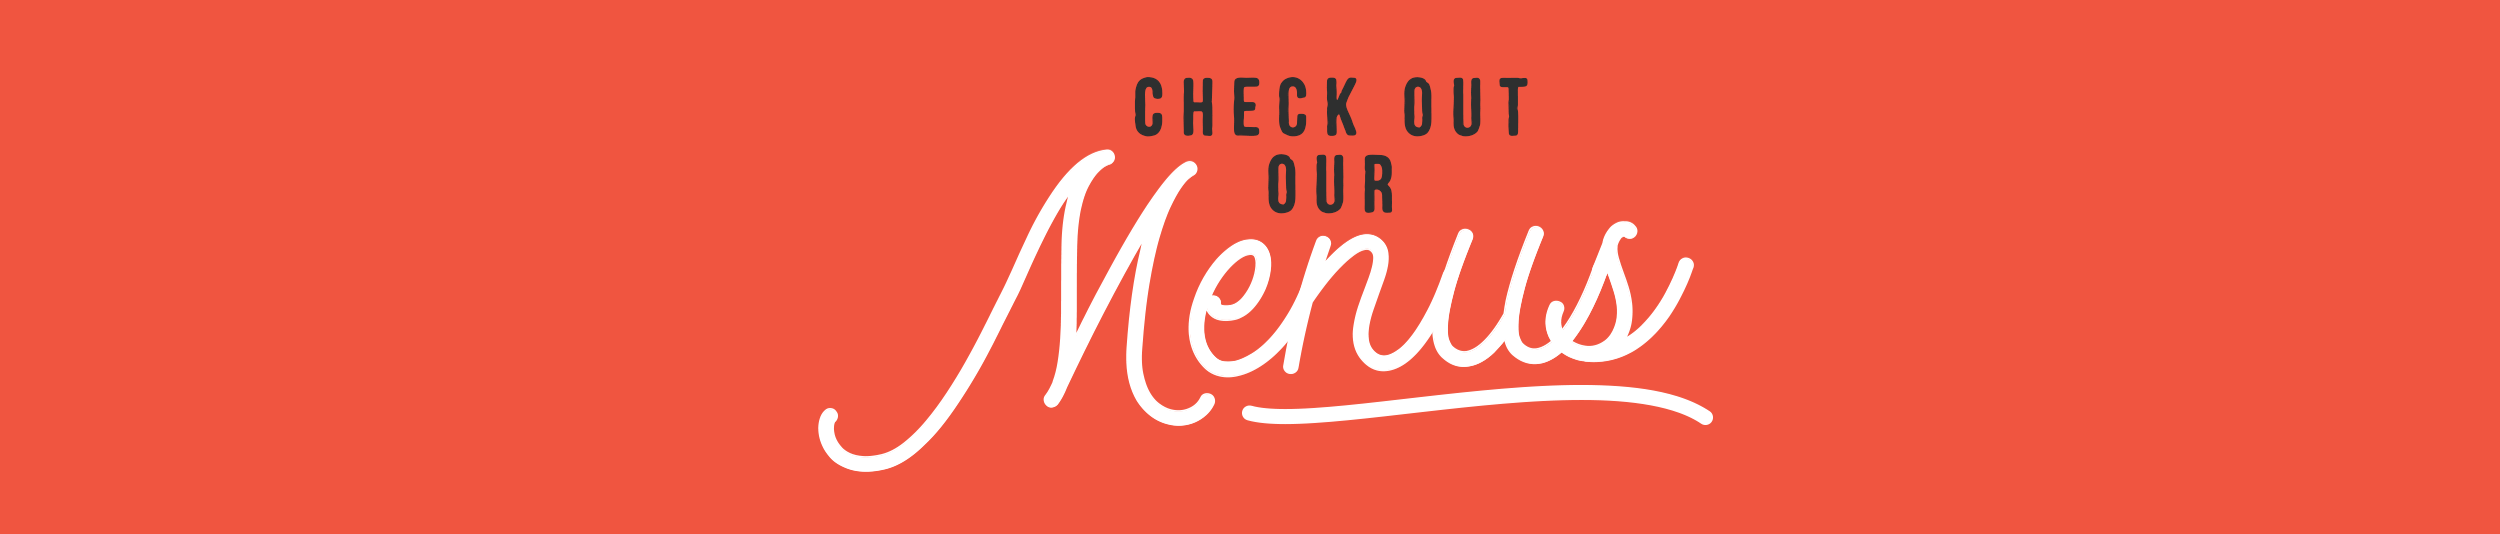 Check out our menu